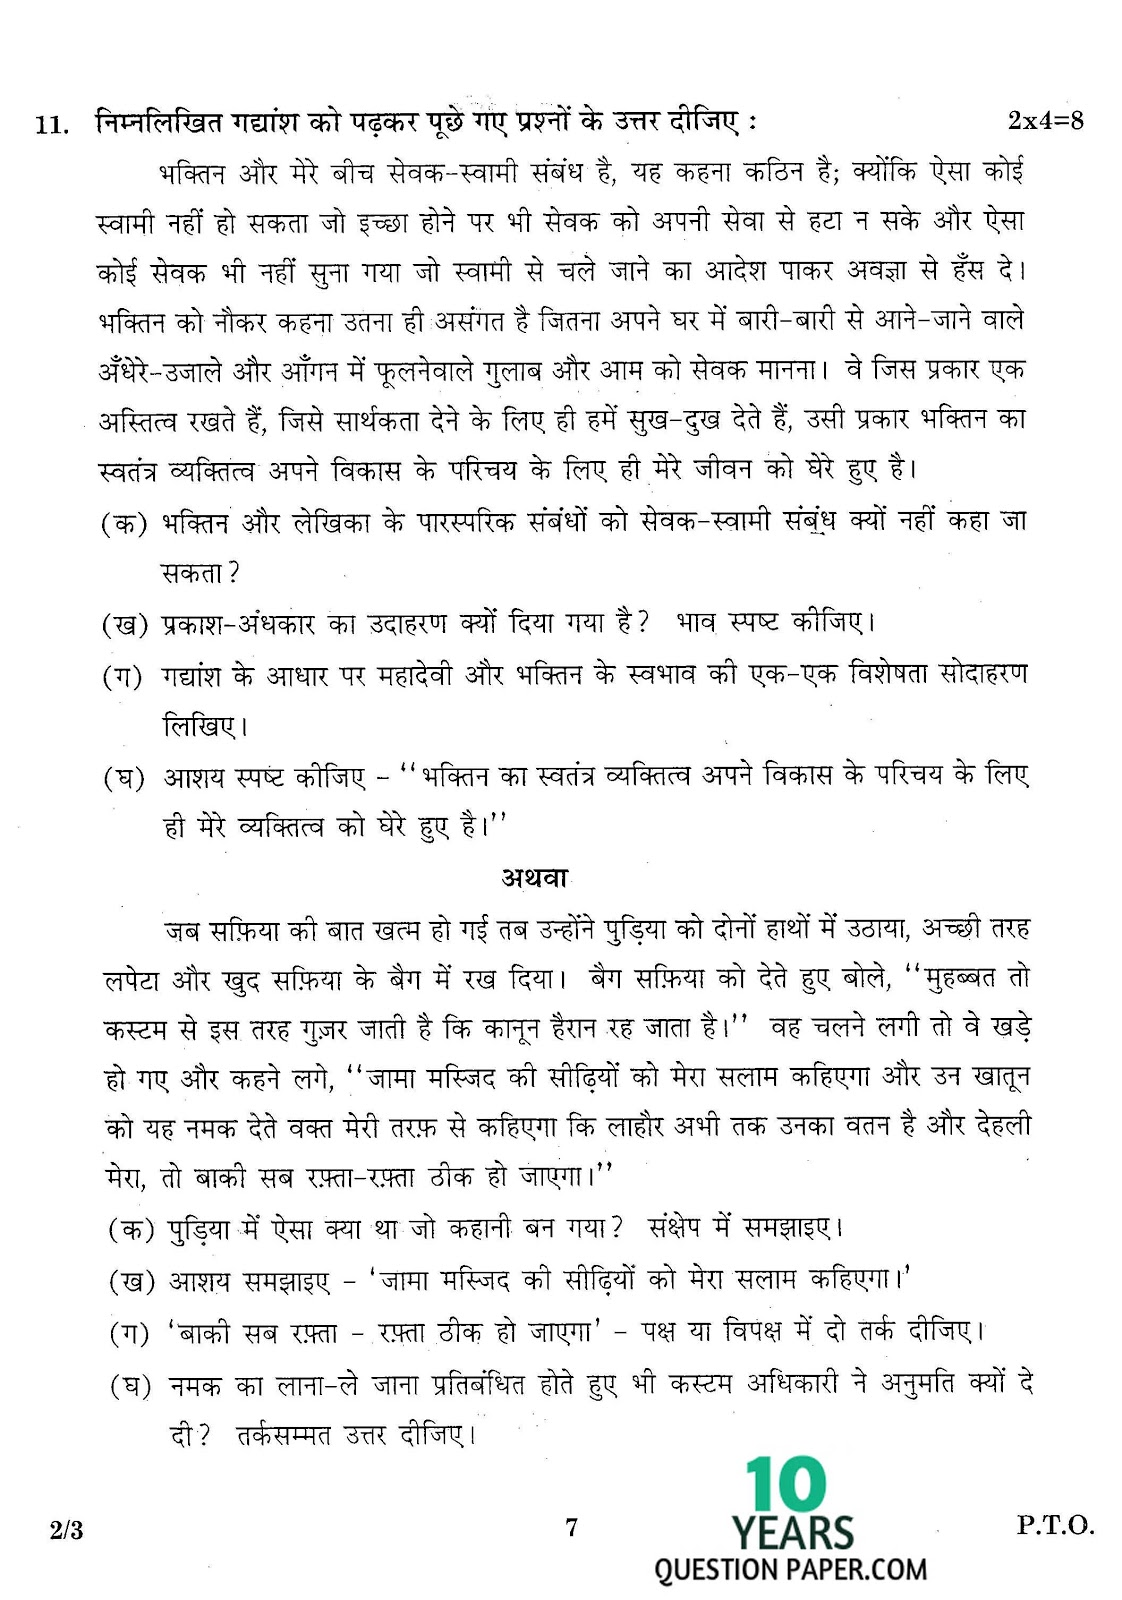 Worksheet Comprehension Passages For Grade 5 worksheet comprehension passages for grade 5 mikyu free cbse english class 10 6th hindi worksheet